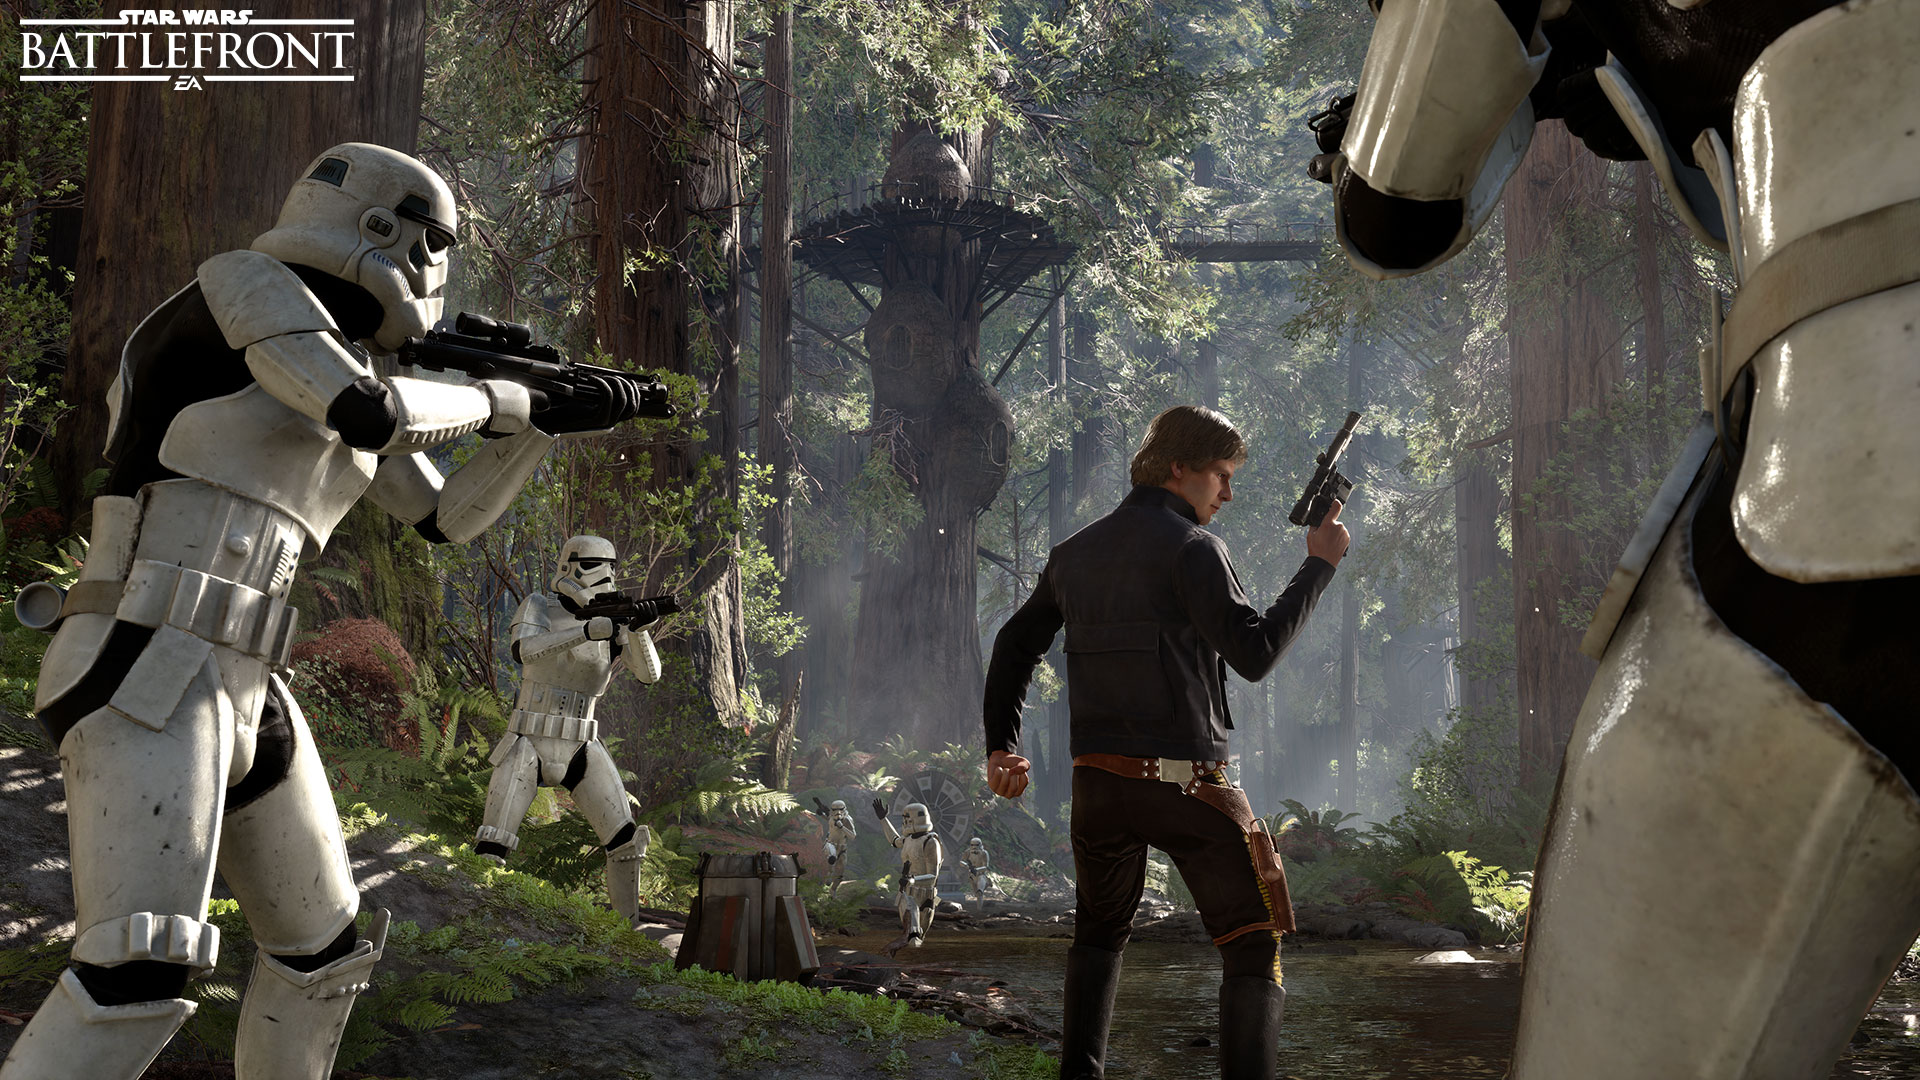 Han Solo Pose Battlefront